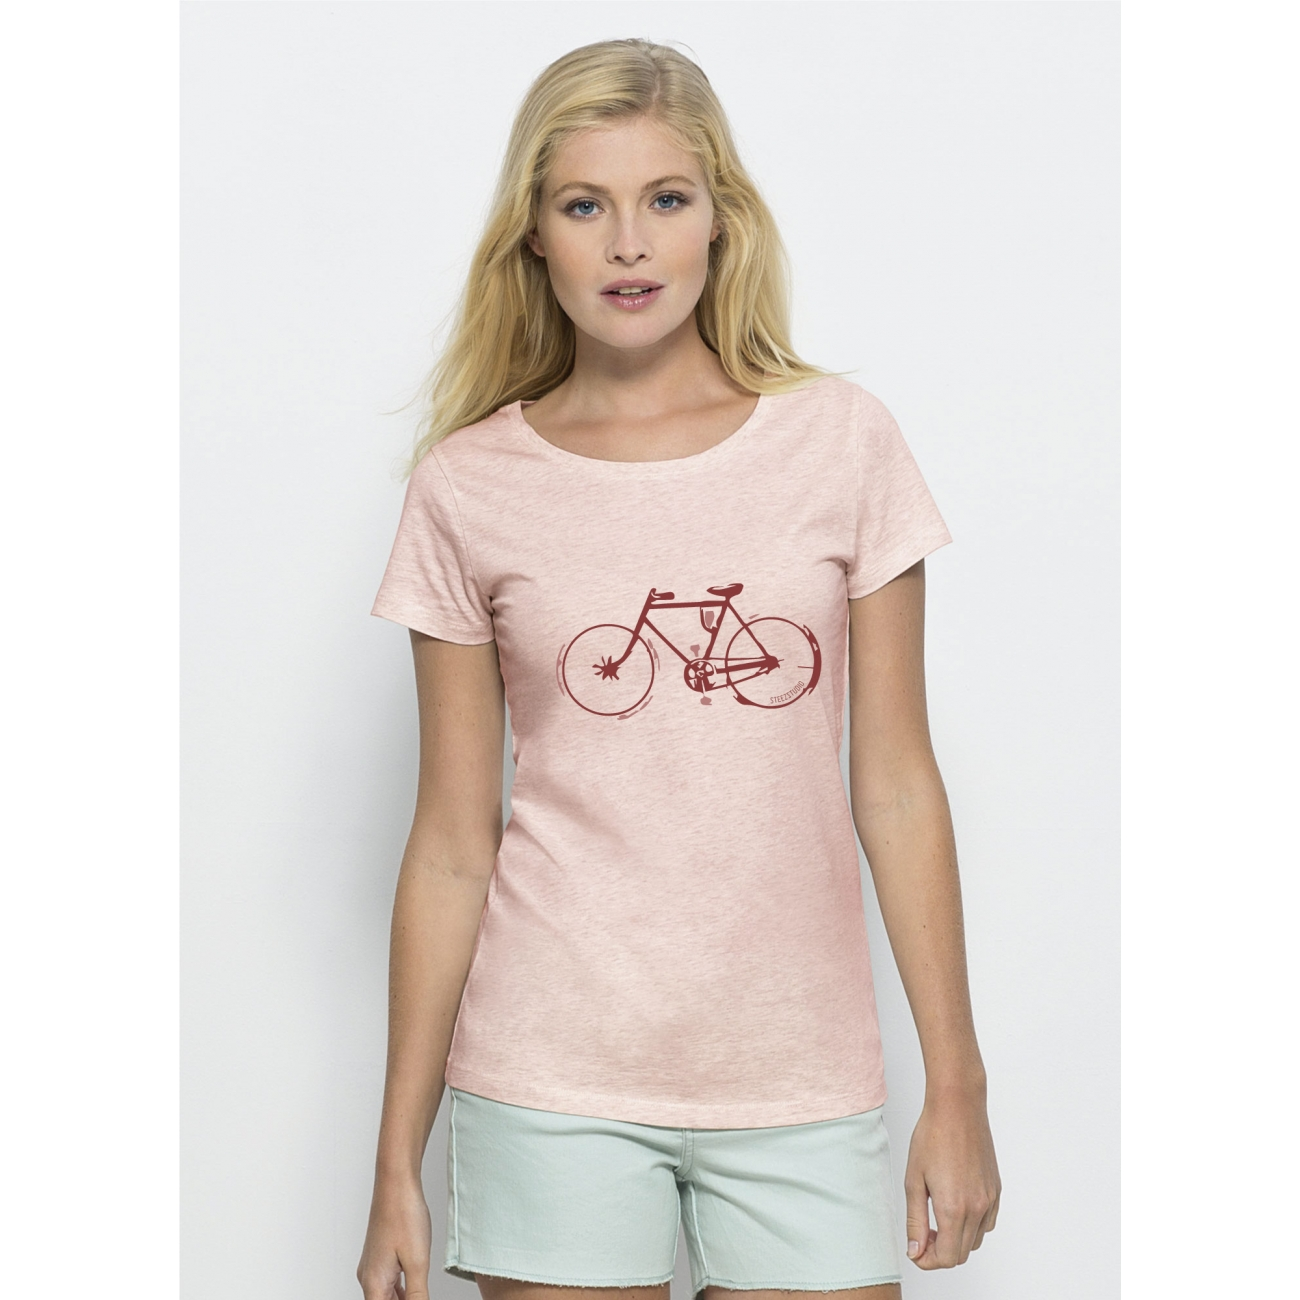 https://tee-shirt-bio.com/1969-thickbox_default/tee-shirt-rose-tendre-chine-femme-velo-coton-bio-equitable-mode-bio-ethique.jpg